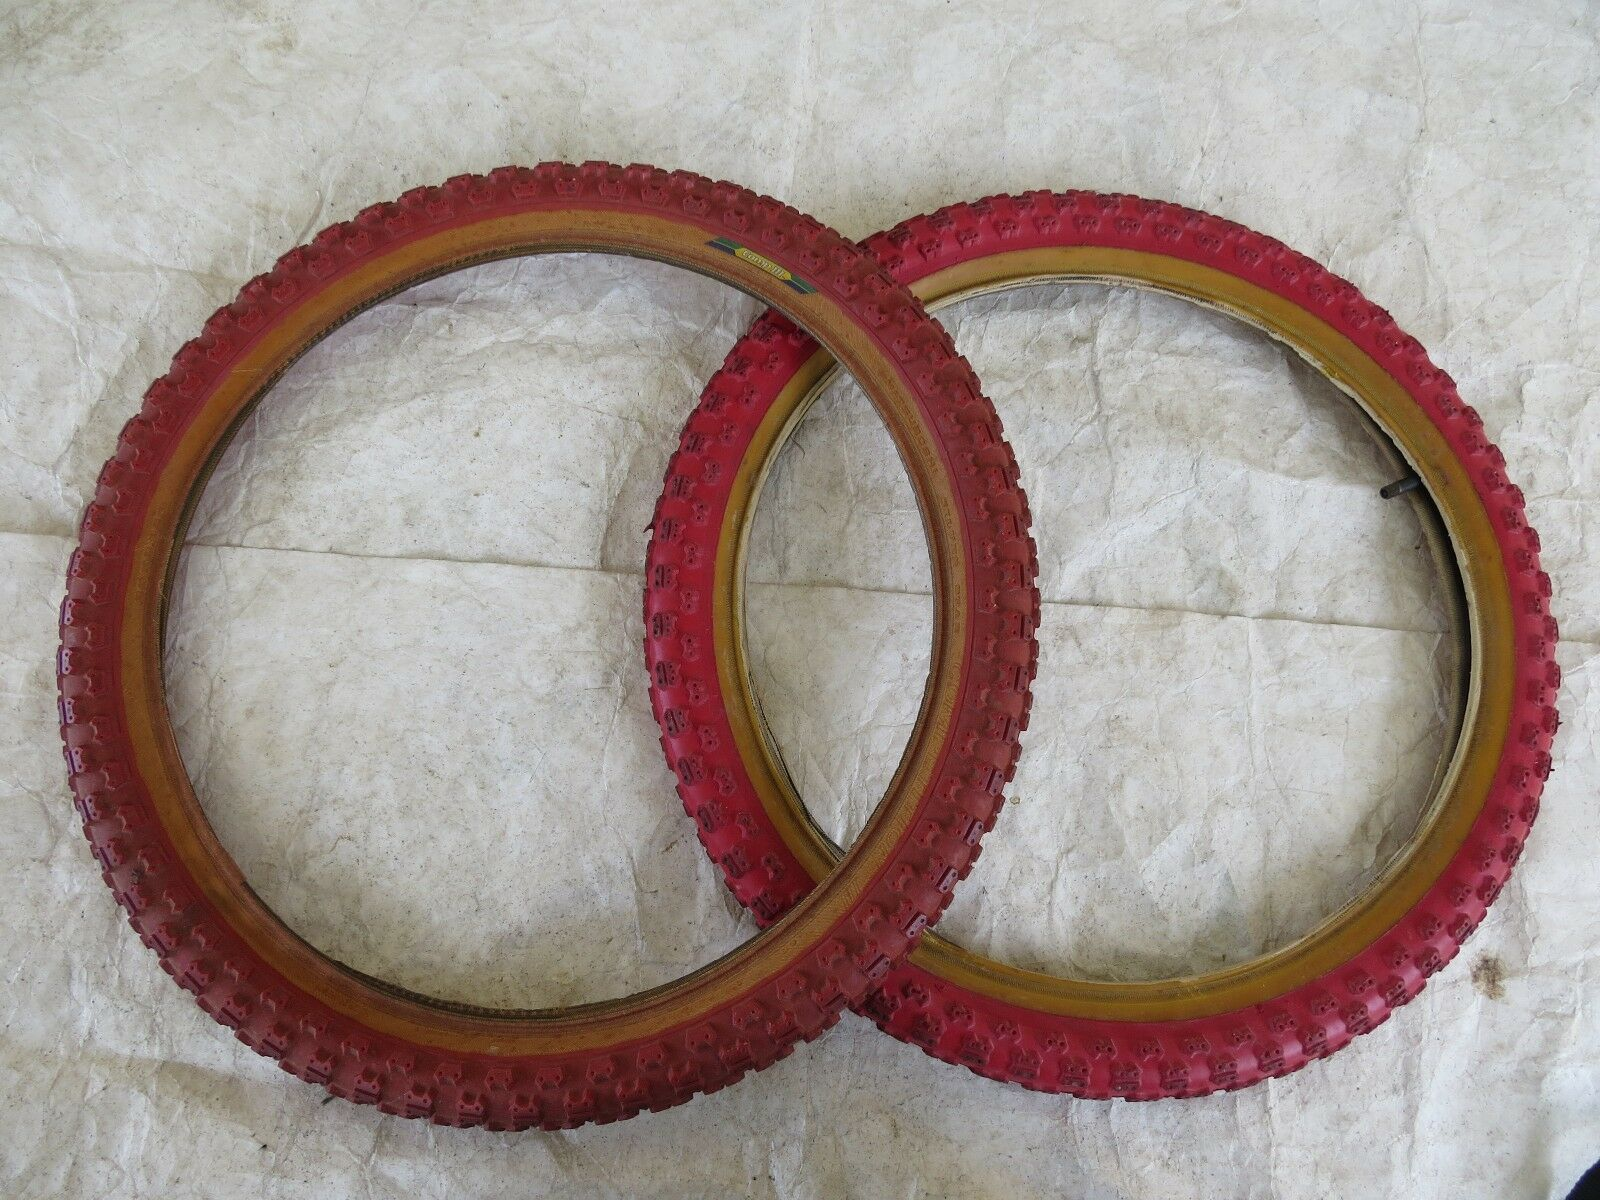 TIOGA COMPETITION 3 TIRES  BMX RACING 20'X175 +2.125  VINTAGE